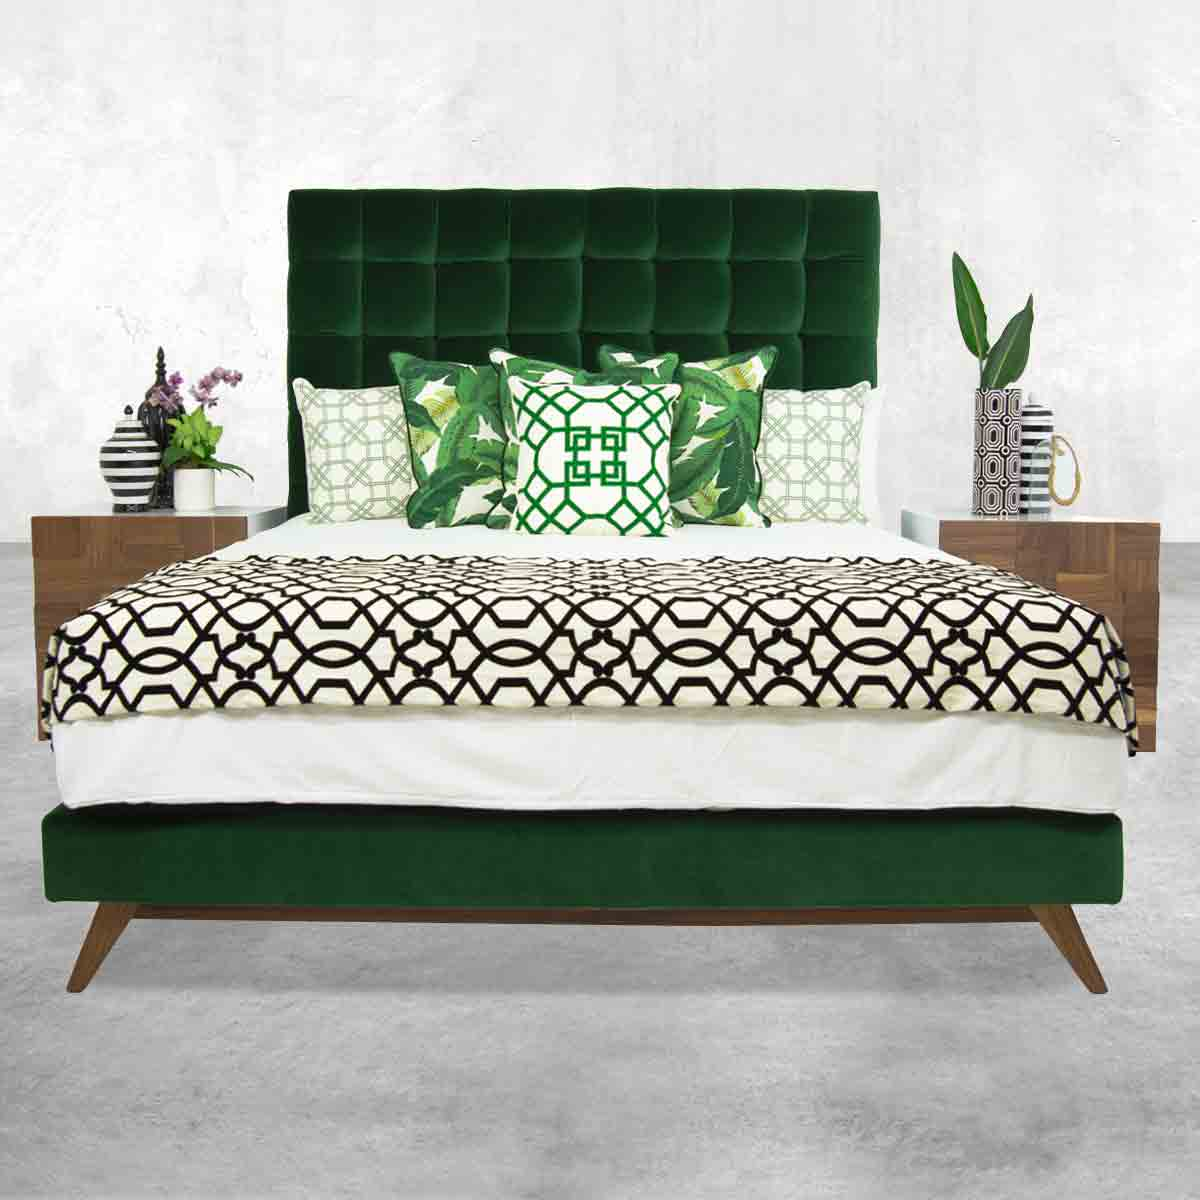 Delano Bed in Como Emerald Velvet